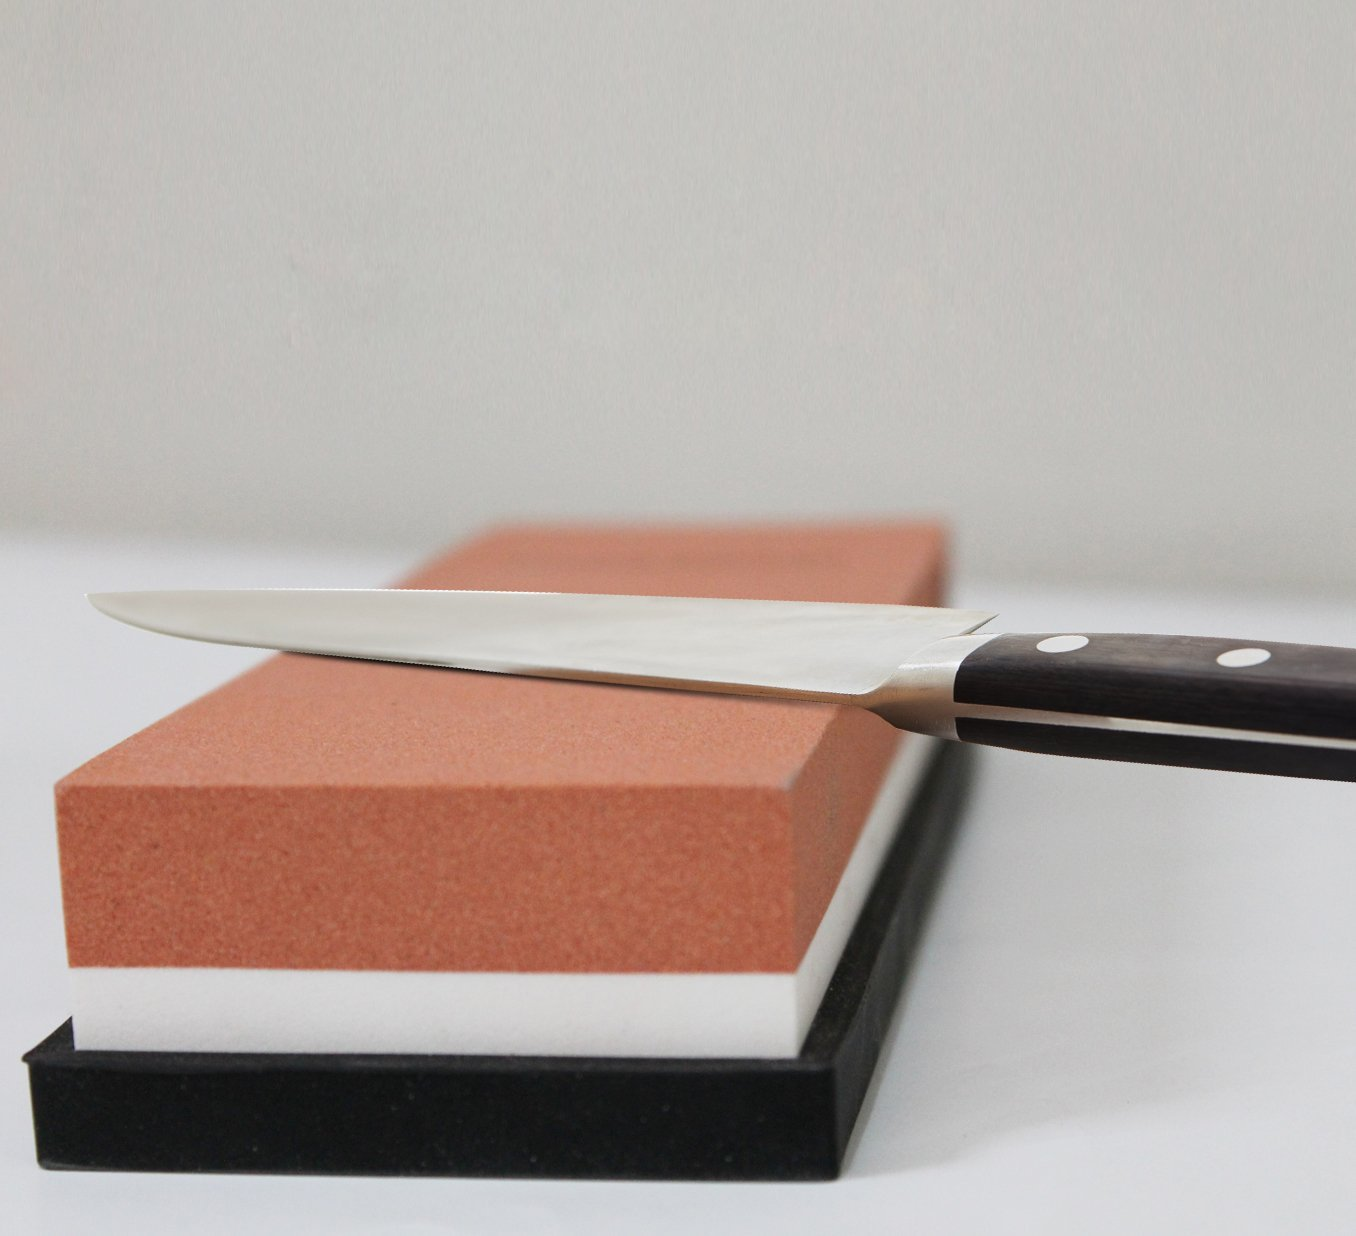 sharpening a knife with a sharpening stone knivesunboxed sharpening a knife with a sharpening stone